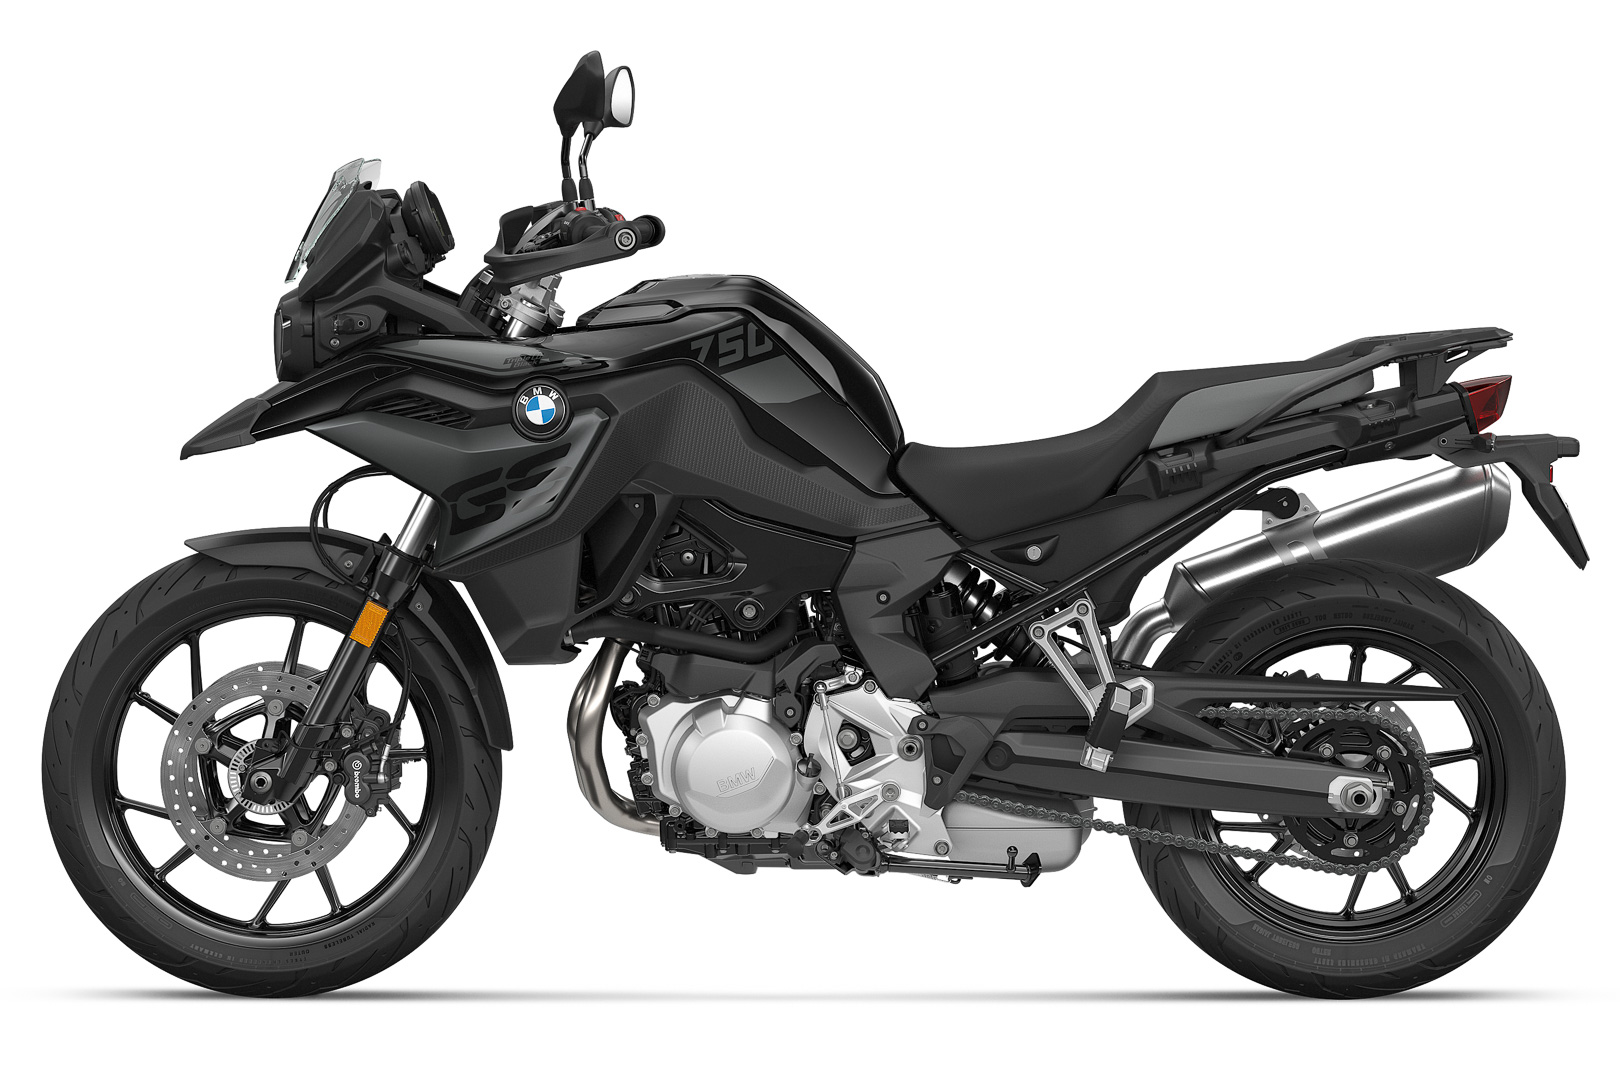 2022 BMW F 750 GS First Look: Price and MSRP